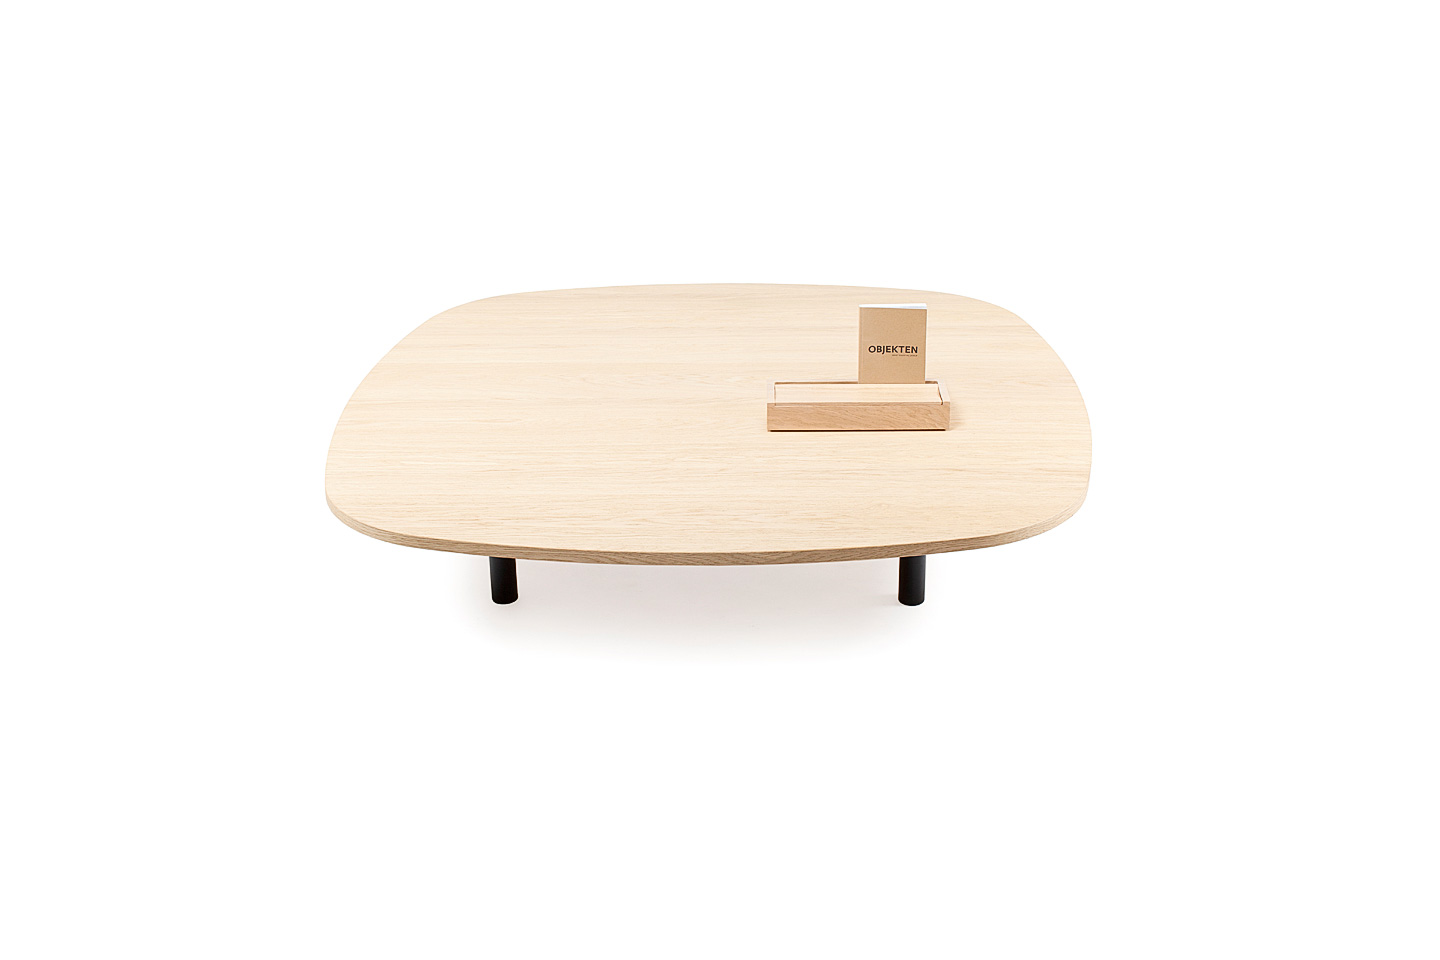 ROUNDED SQUARE Coffee table